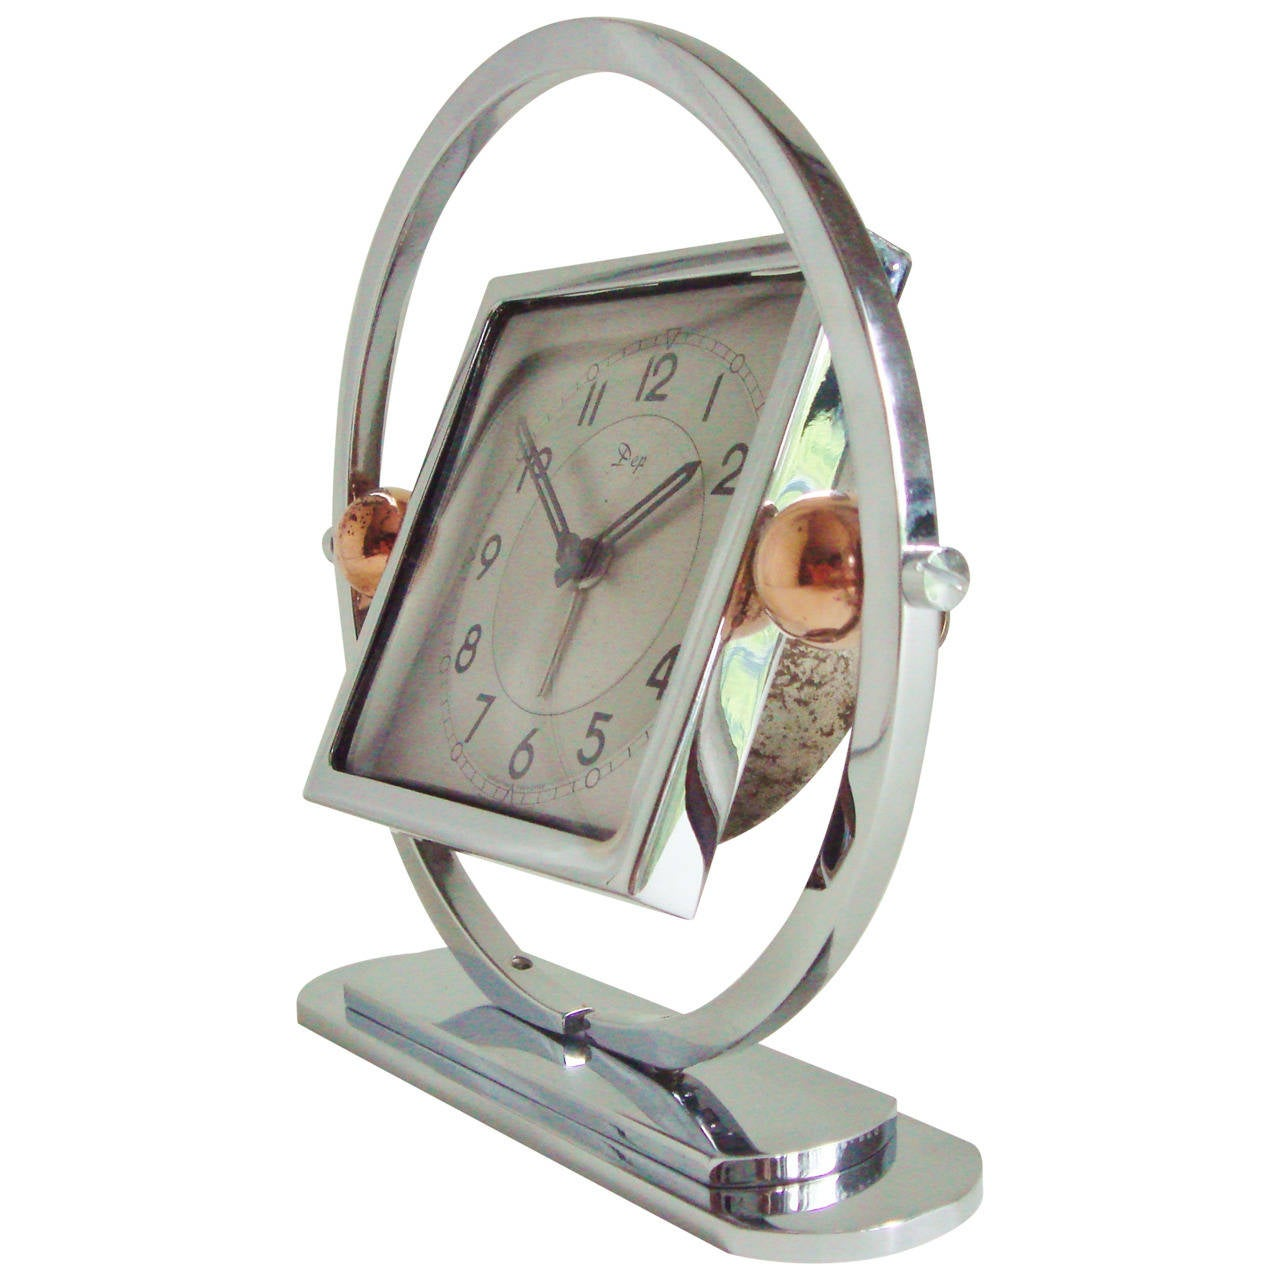 French Art Deco Chrome and Copper Mechanical Tilt Alarm Clock by DEP